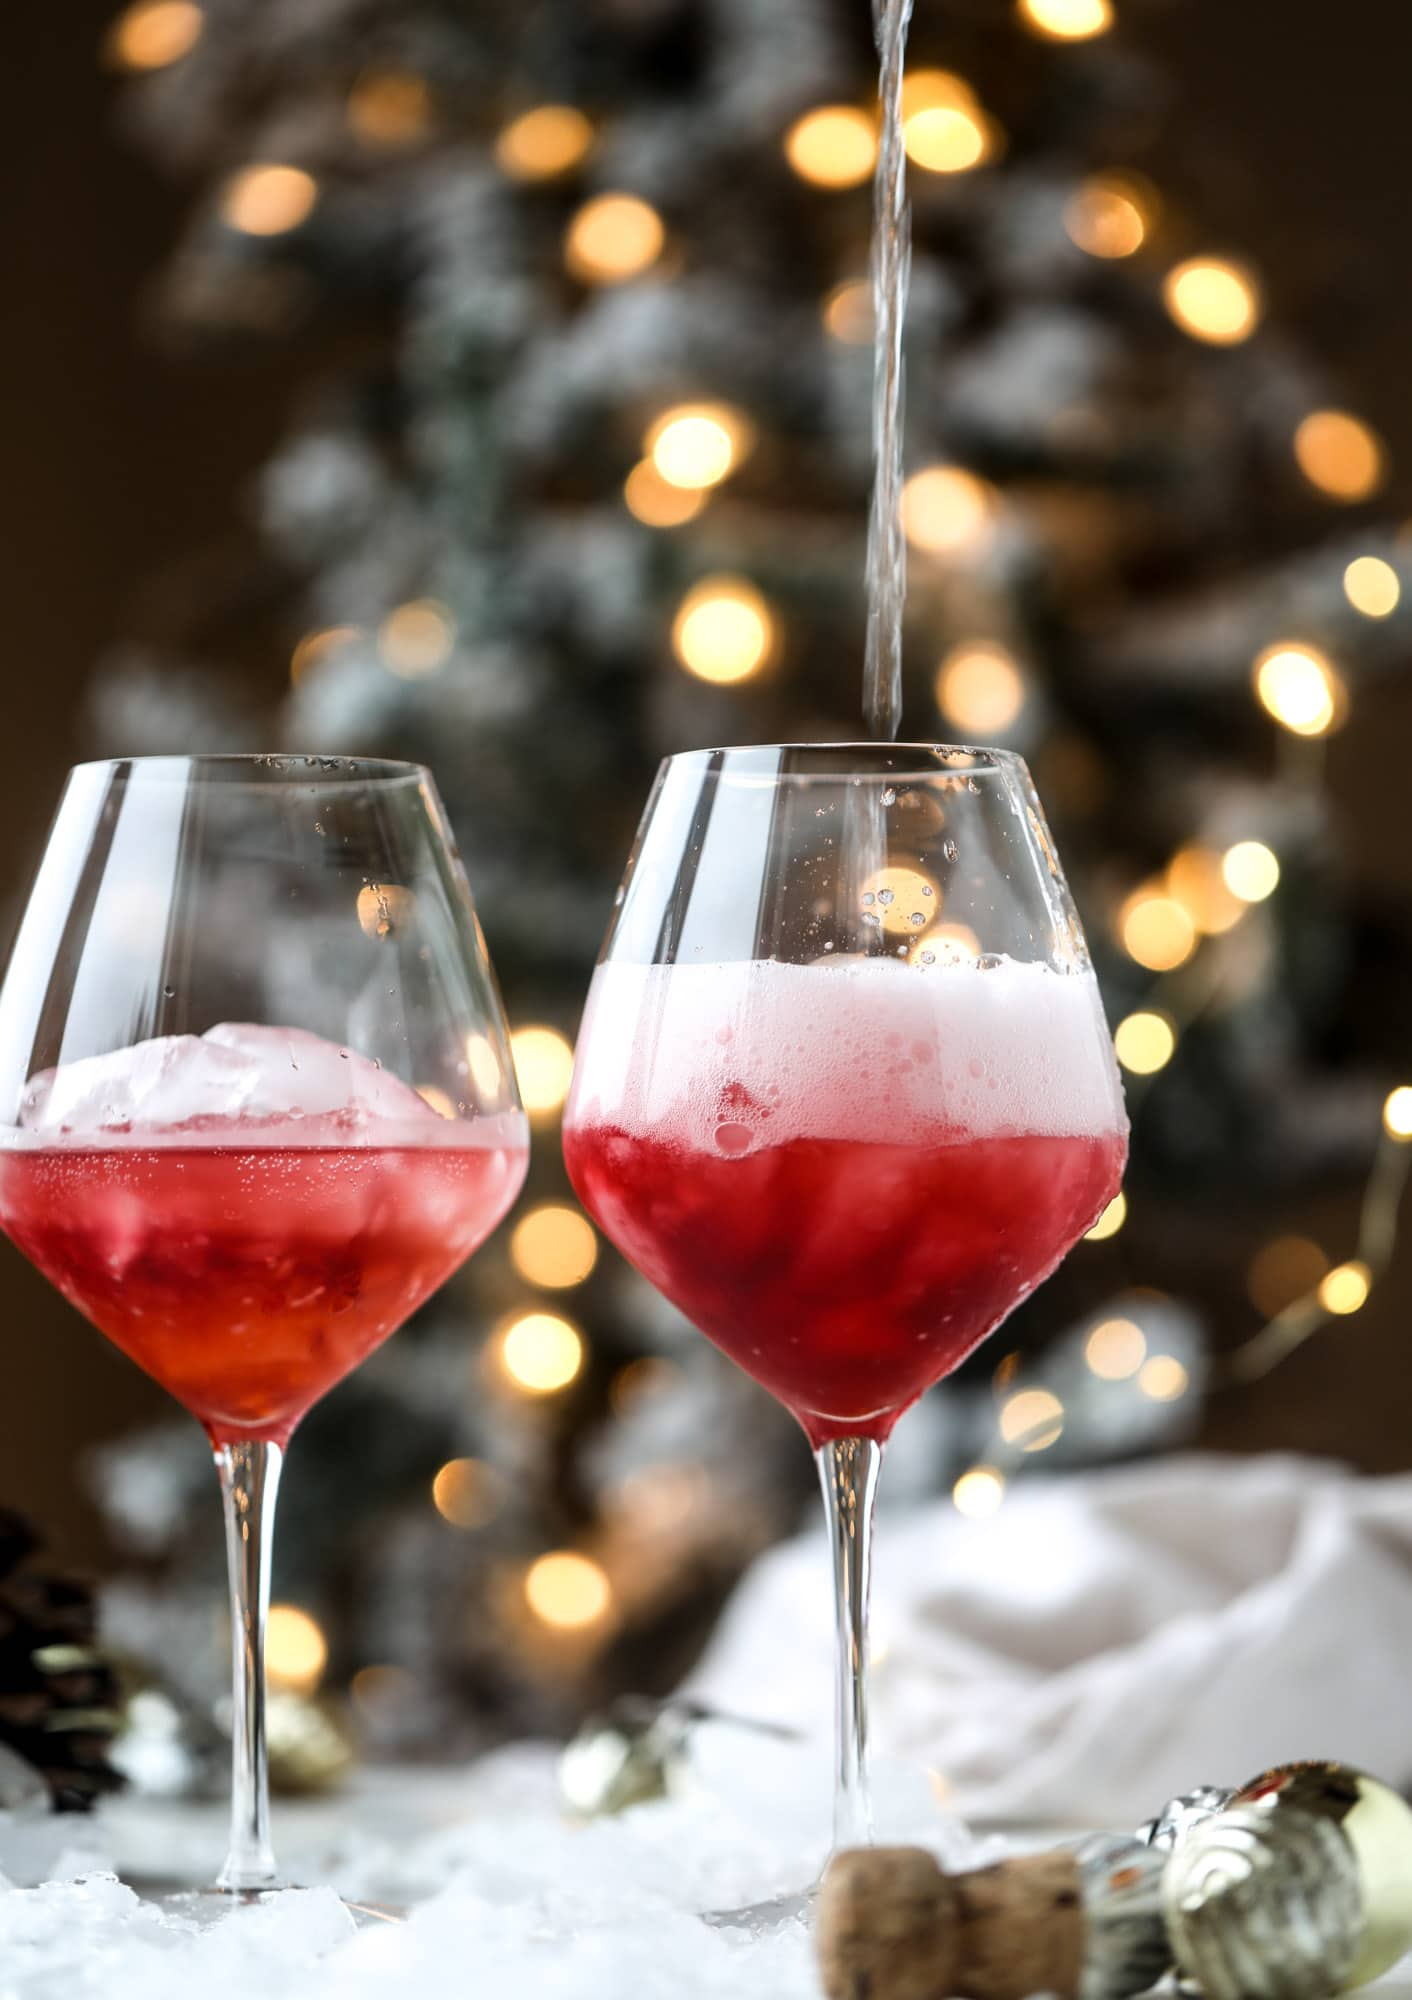 This winter aperol spritz cocktail is a seasonal spin on the classic aperol spritz! Festive cranberry and classic orange come together with prosecco and club soda to create a super light and refreshing cocktail for the holidays! I howsweeteats.com #aperol #spritz